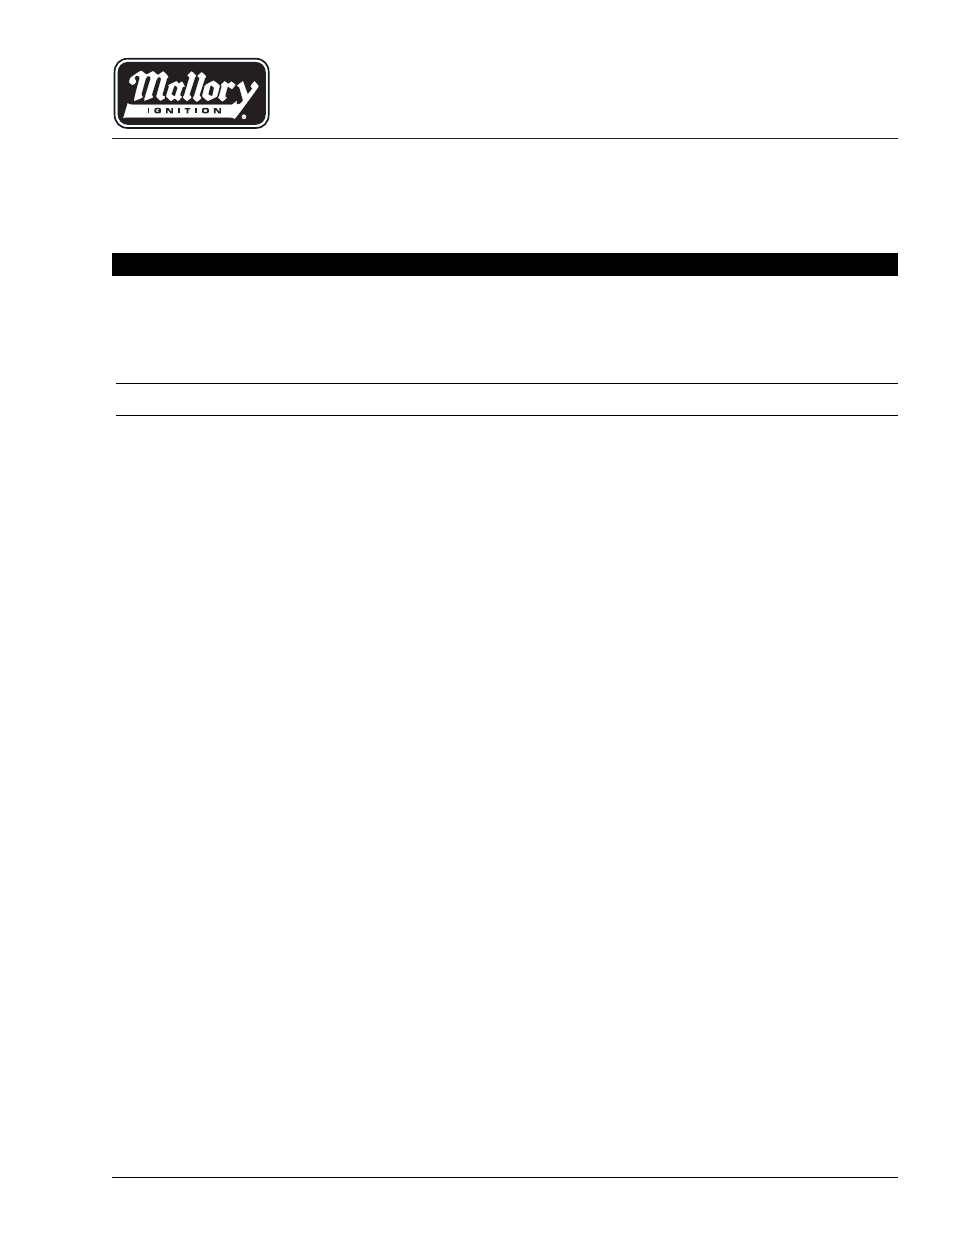 Mallory Ignition Unilite Distributor User Manual 13 Pages Chevy Timing Marks Diagram Also For 605